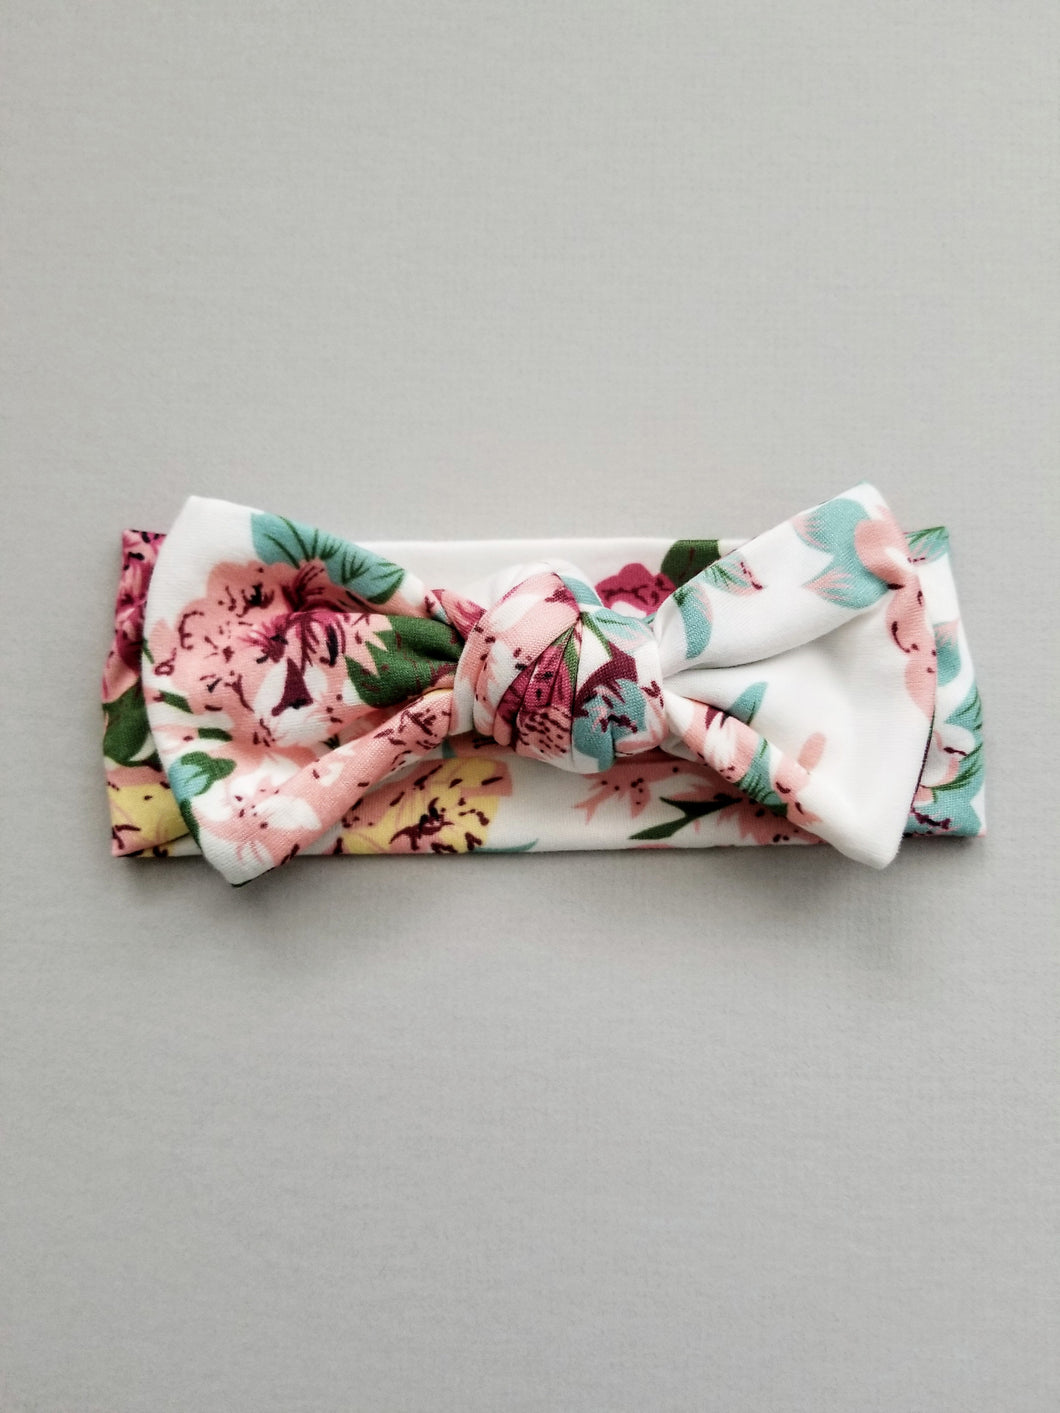 Scarlett Knotted Bow Headwrap - Adassa Rose